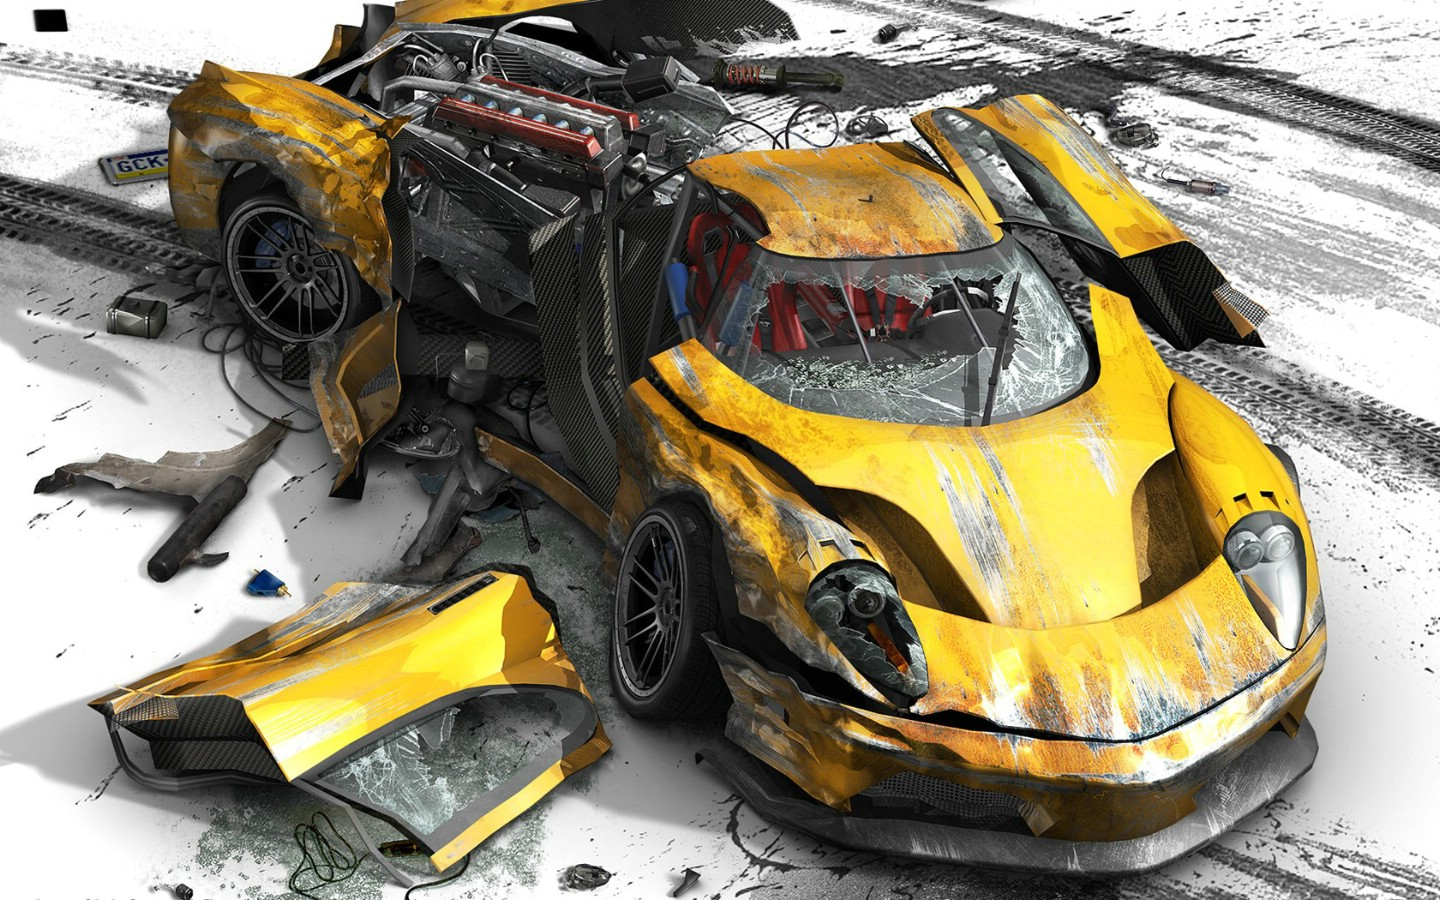 1440 900xbox360 xbox360 - Coloriage cars accident ...